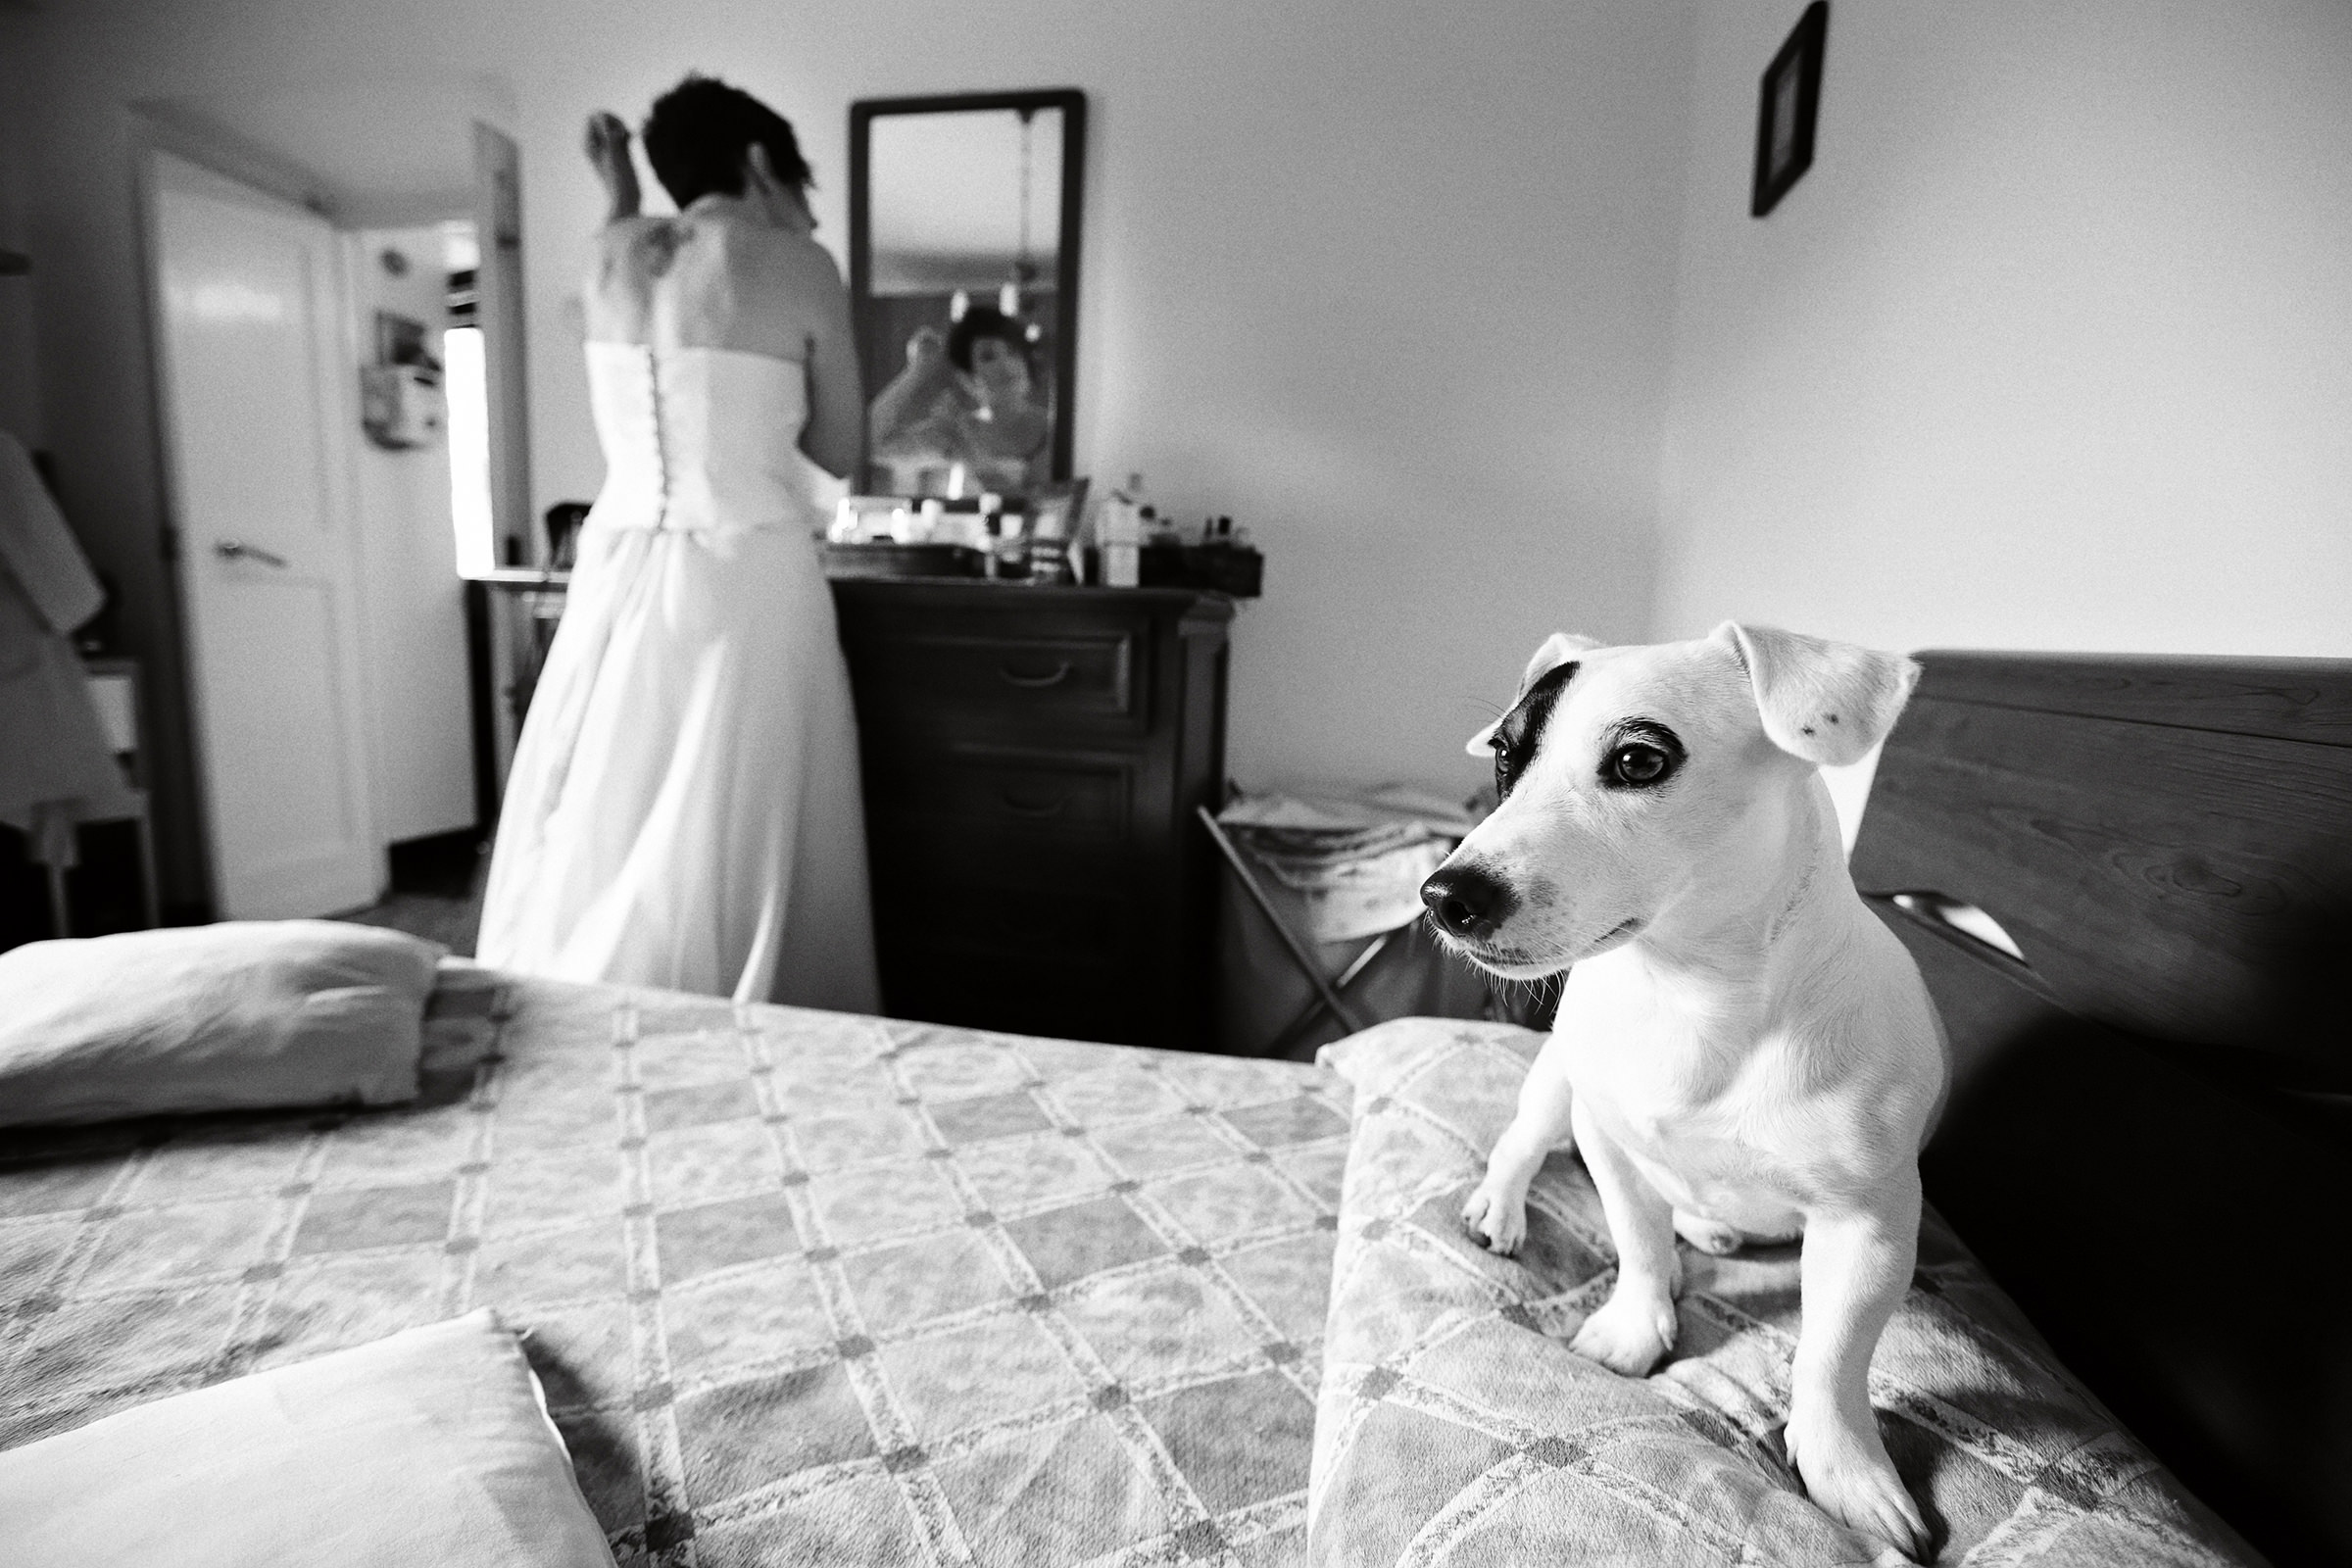 Bride getting ready with dog on bed - photo by Andrea Bagnasco Fotografie